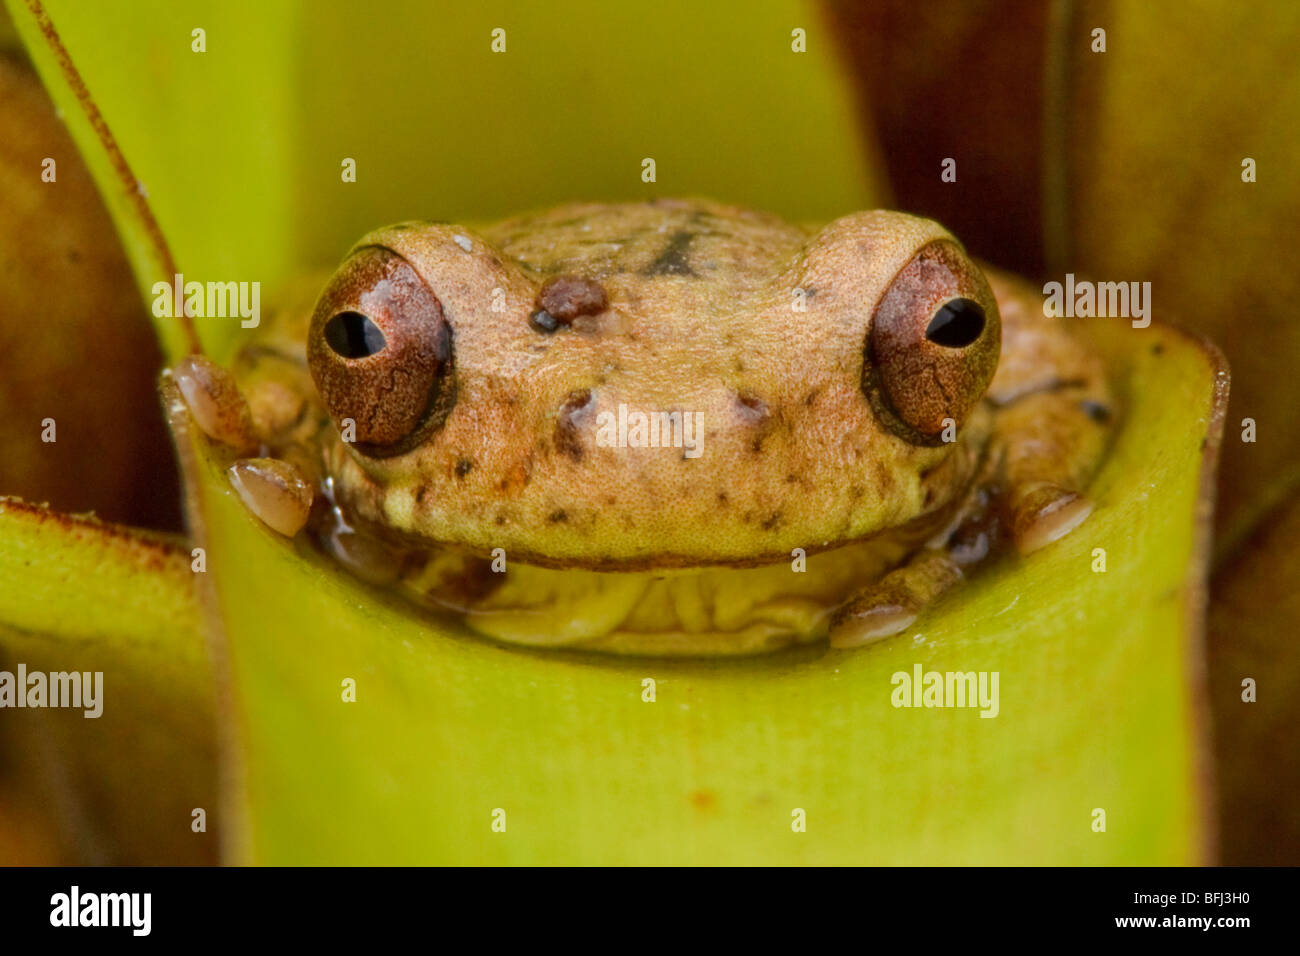 A treefrog perched on a bromeliad in the Tandayapa Valley of Ecuador. - Stock Image